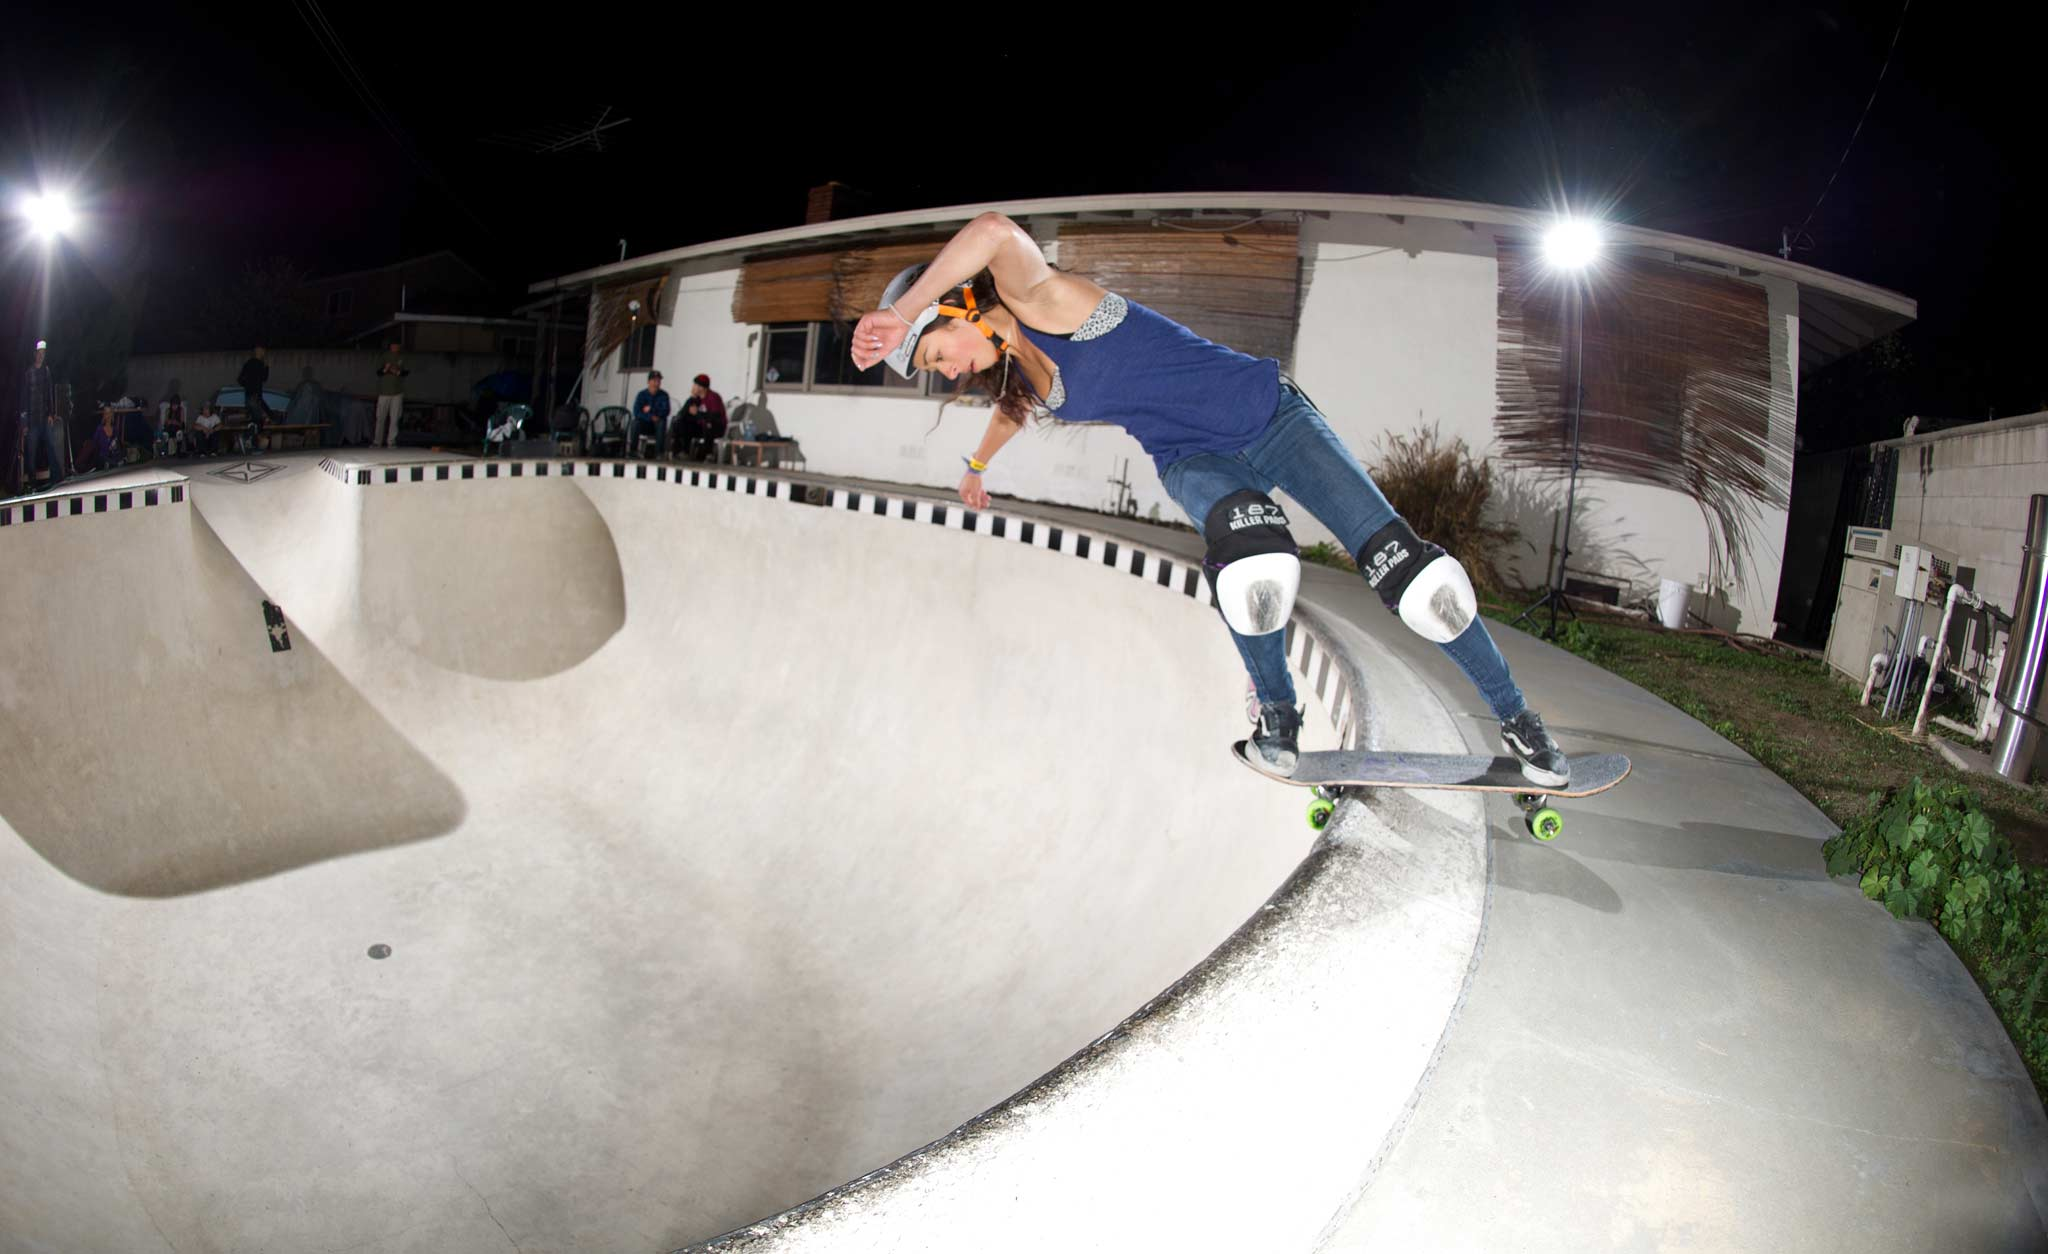 Lizzie Armanto boardslides at Kelly Belmar's backyard pool.